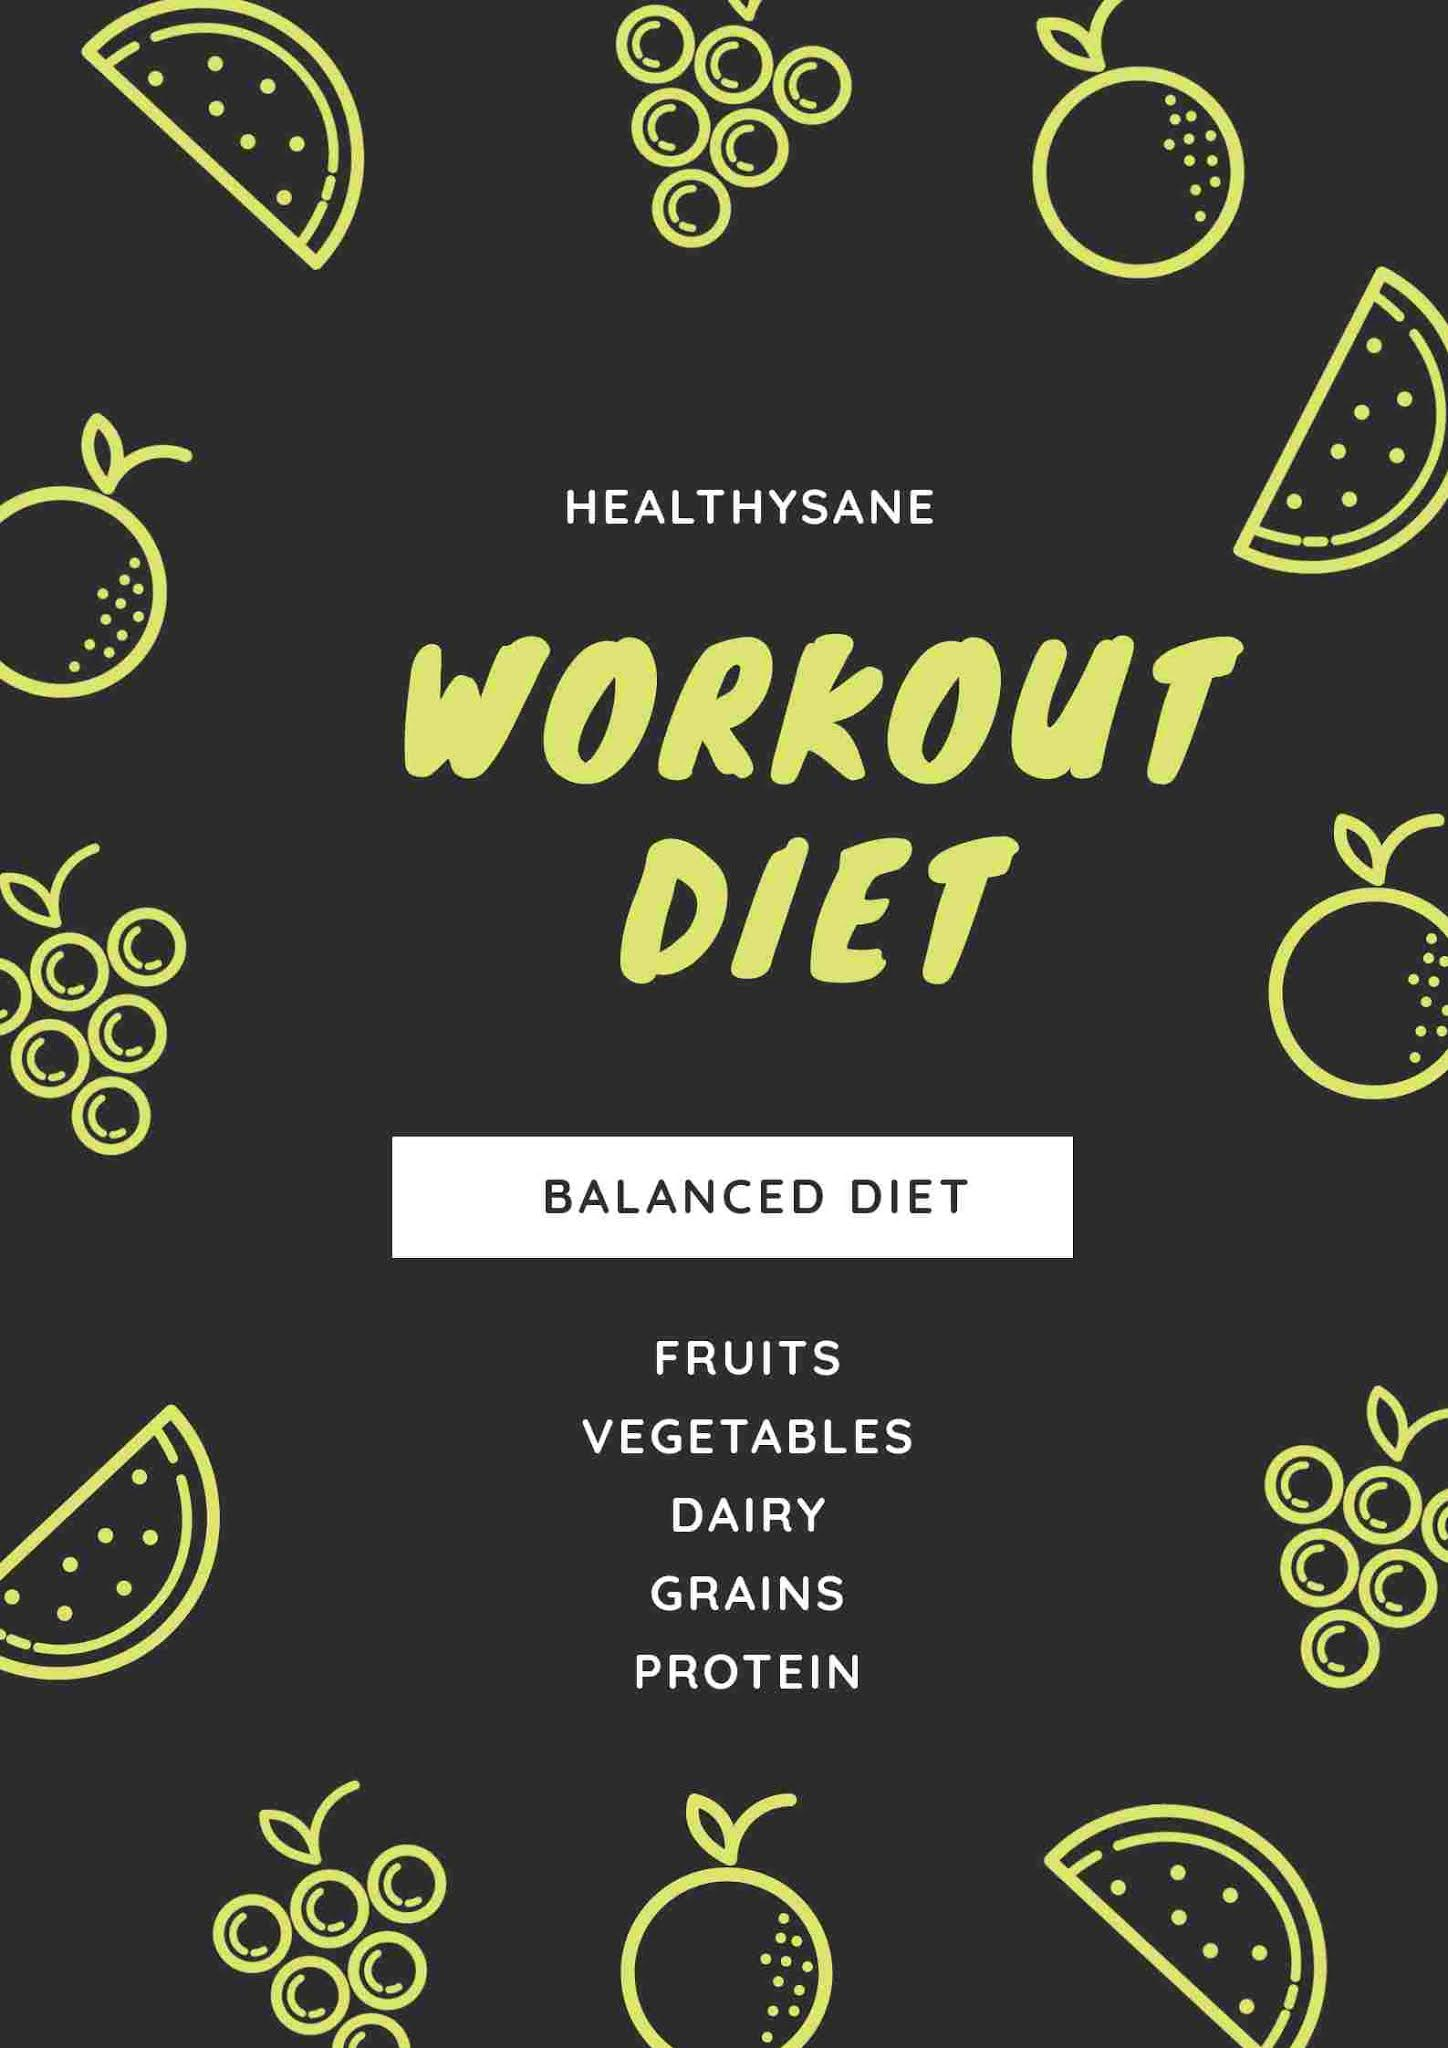 Workout diet, vegan diet, fitness, gym workout